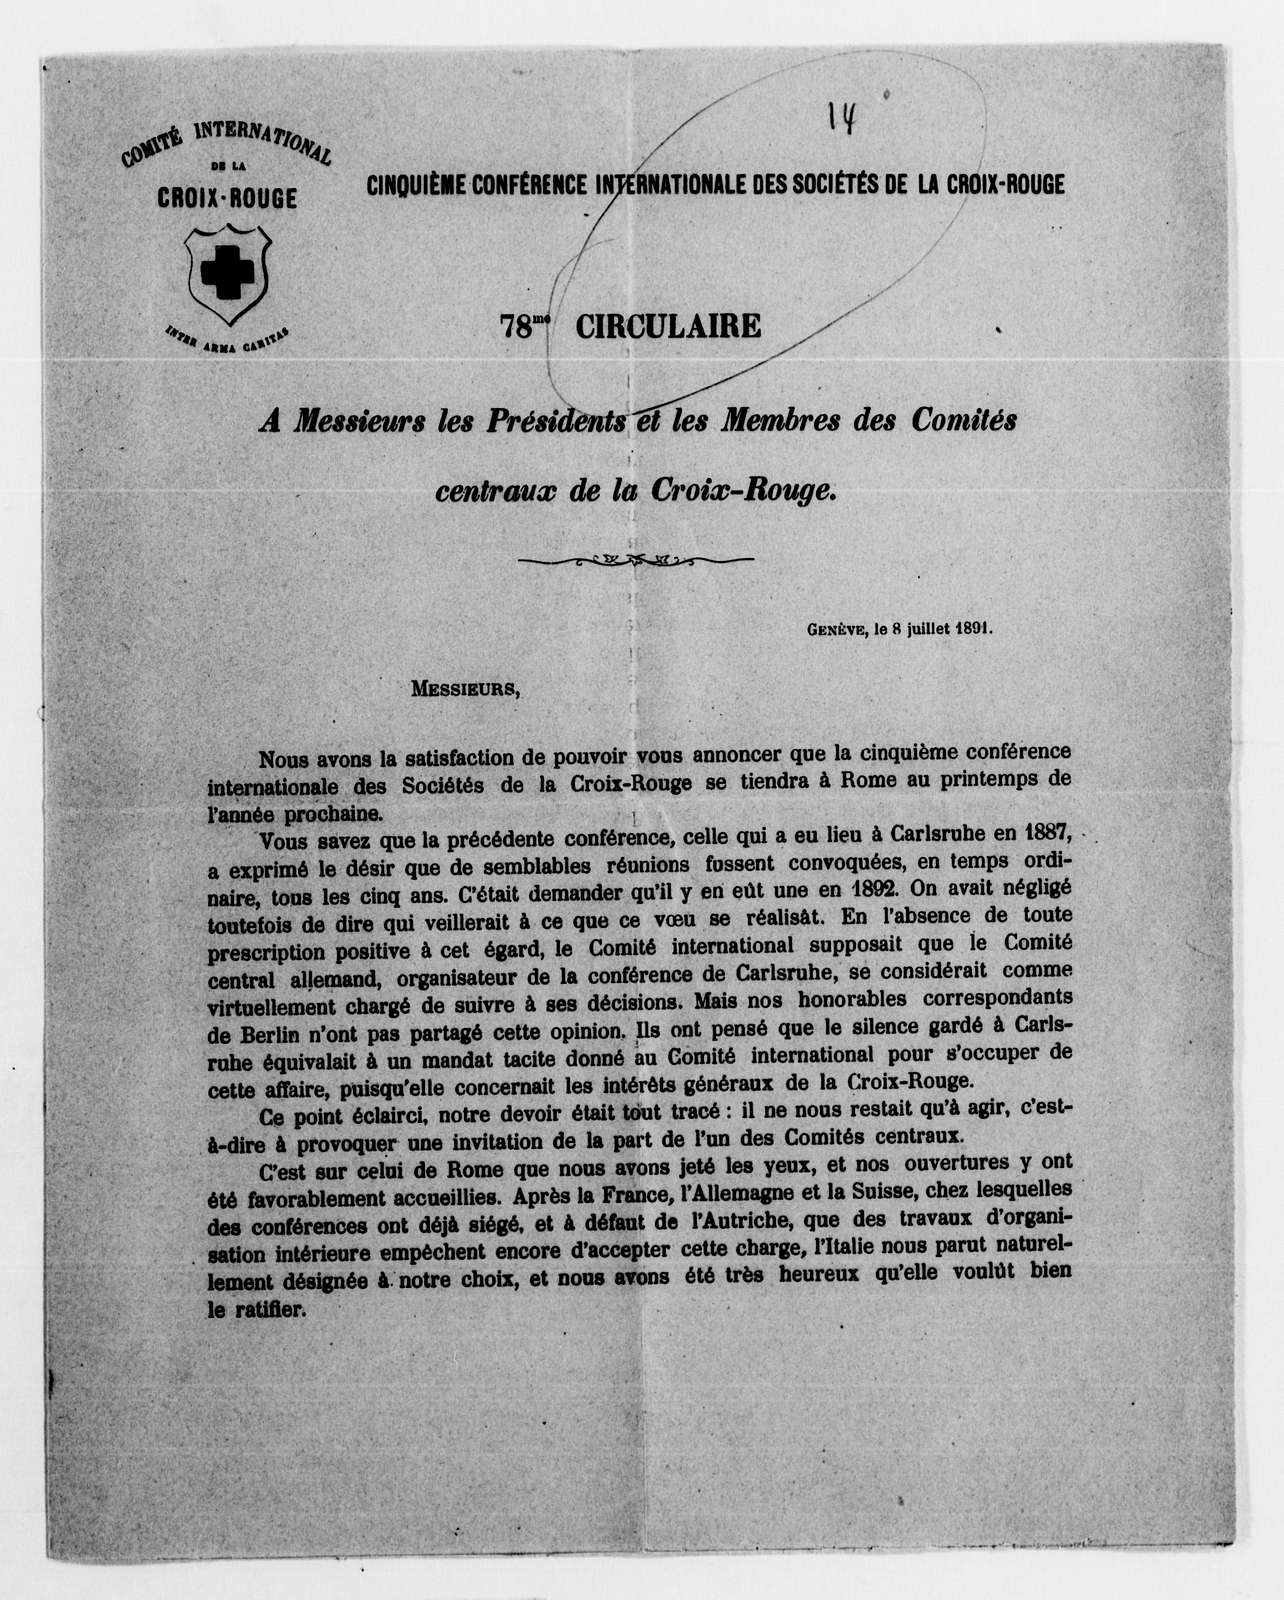 Clara Barton Papers: Red Cross File, 1863-1957; International Committee of the Red Cross, 1863-1919; Conferences; Fifth International Red Cross Conference, Rome, Italy, Apr. 1892